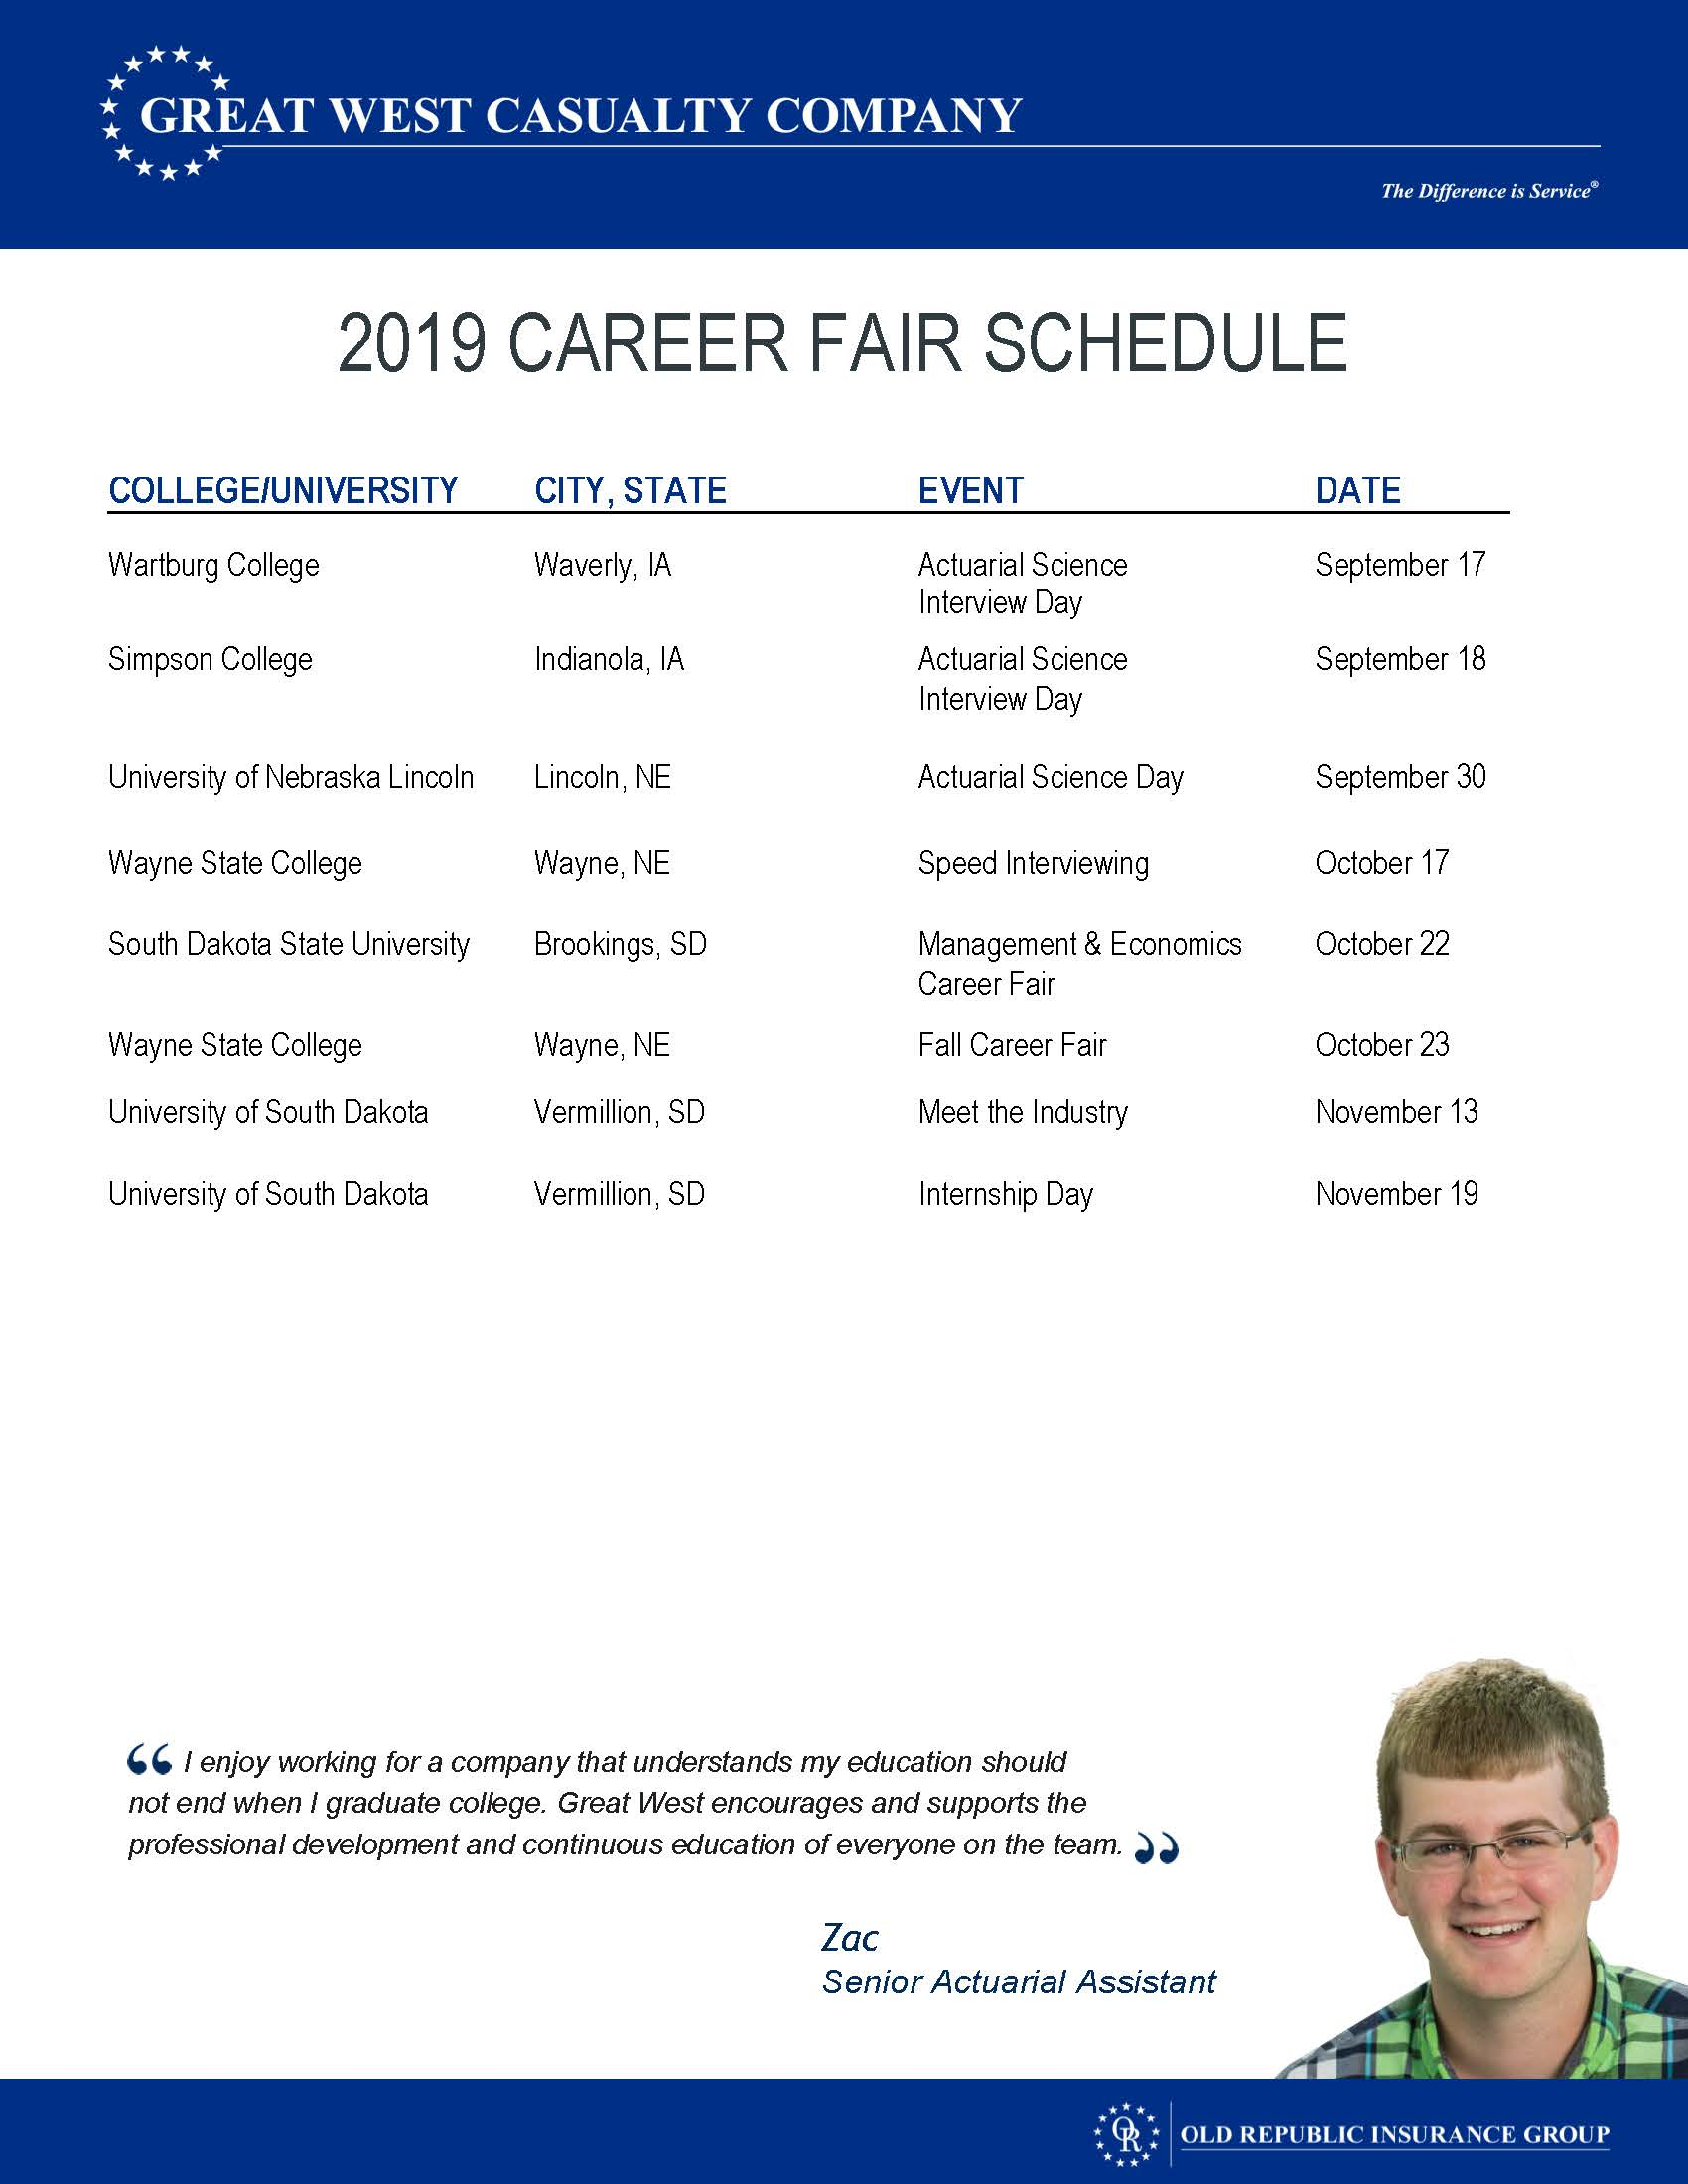 HR Career Fair Schedule 2019